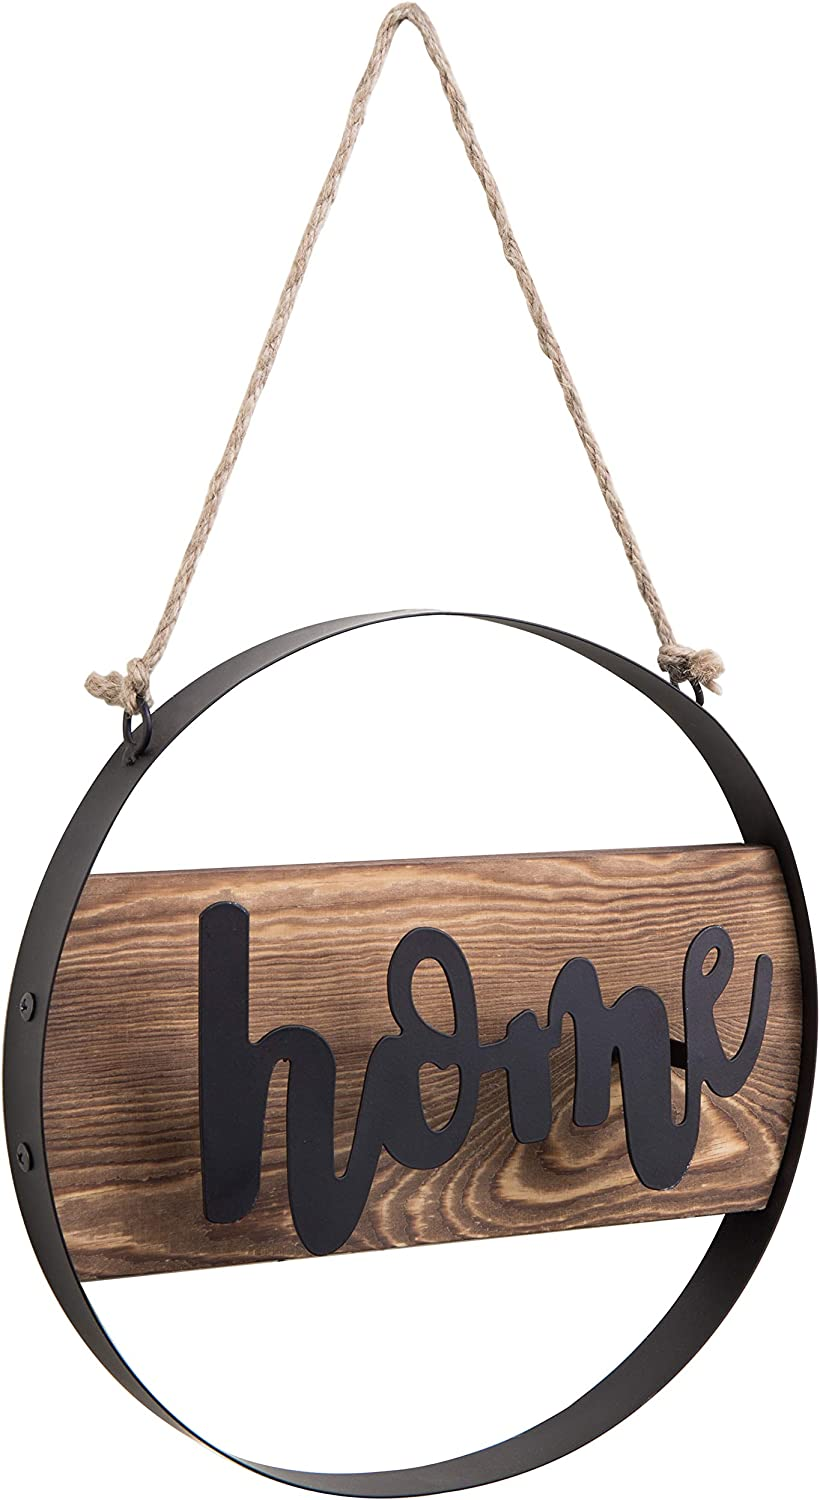 MyGift Hanging Decorative Home Round Wood & Black Metal Sign with Twisted Jute Rope